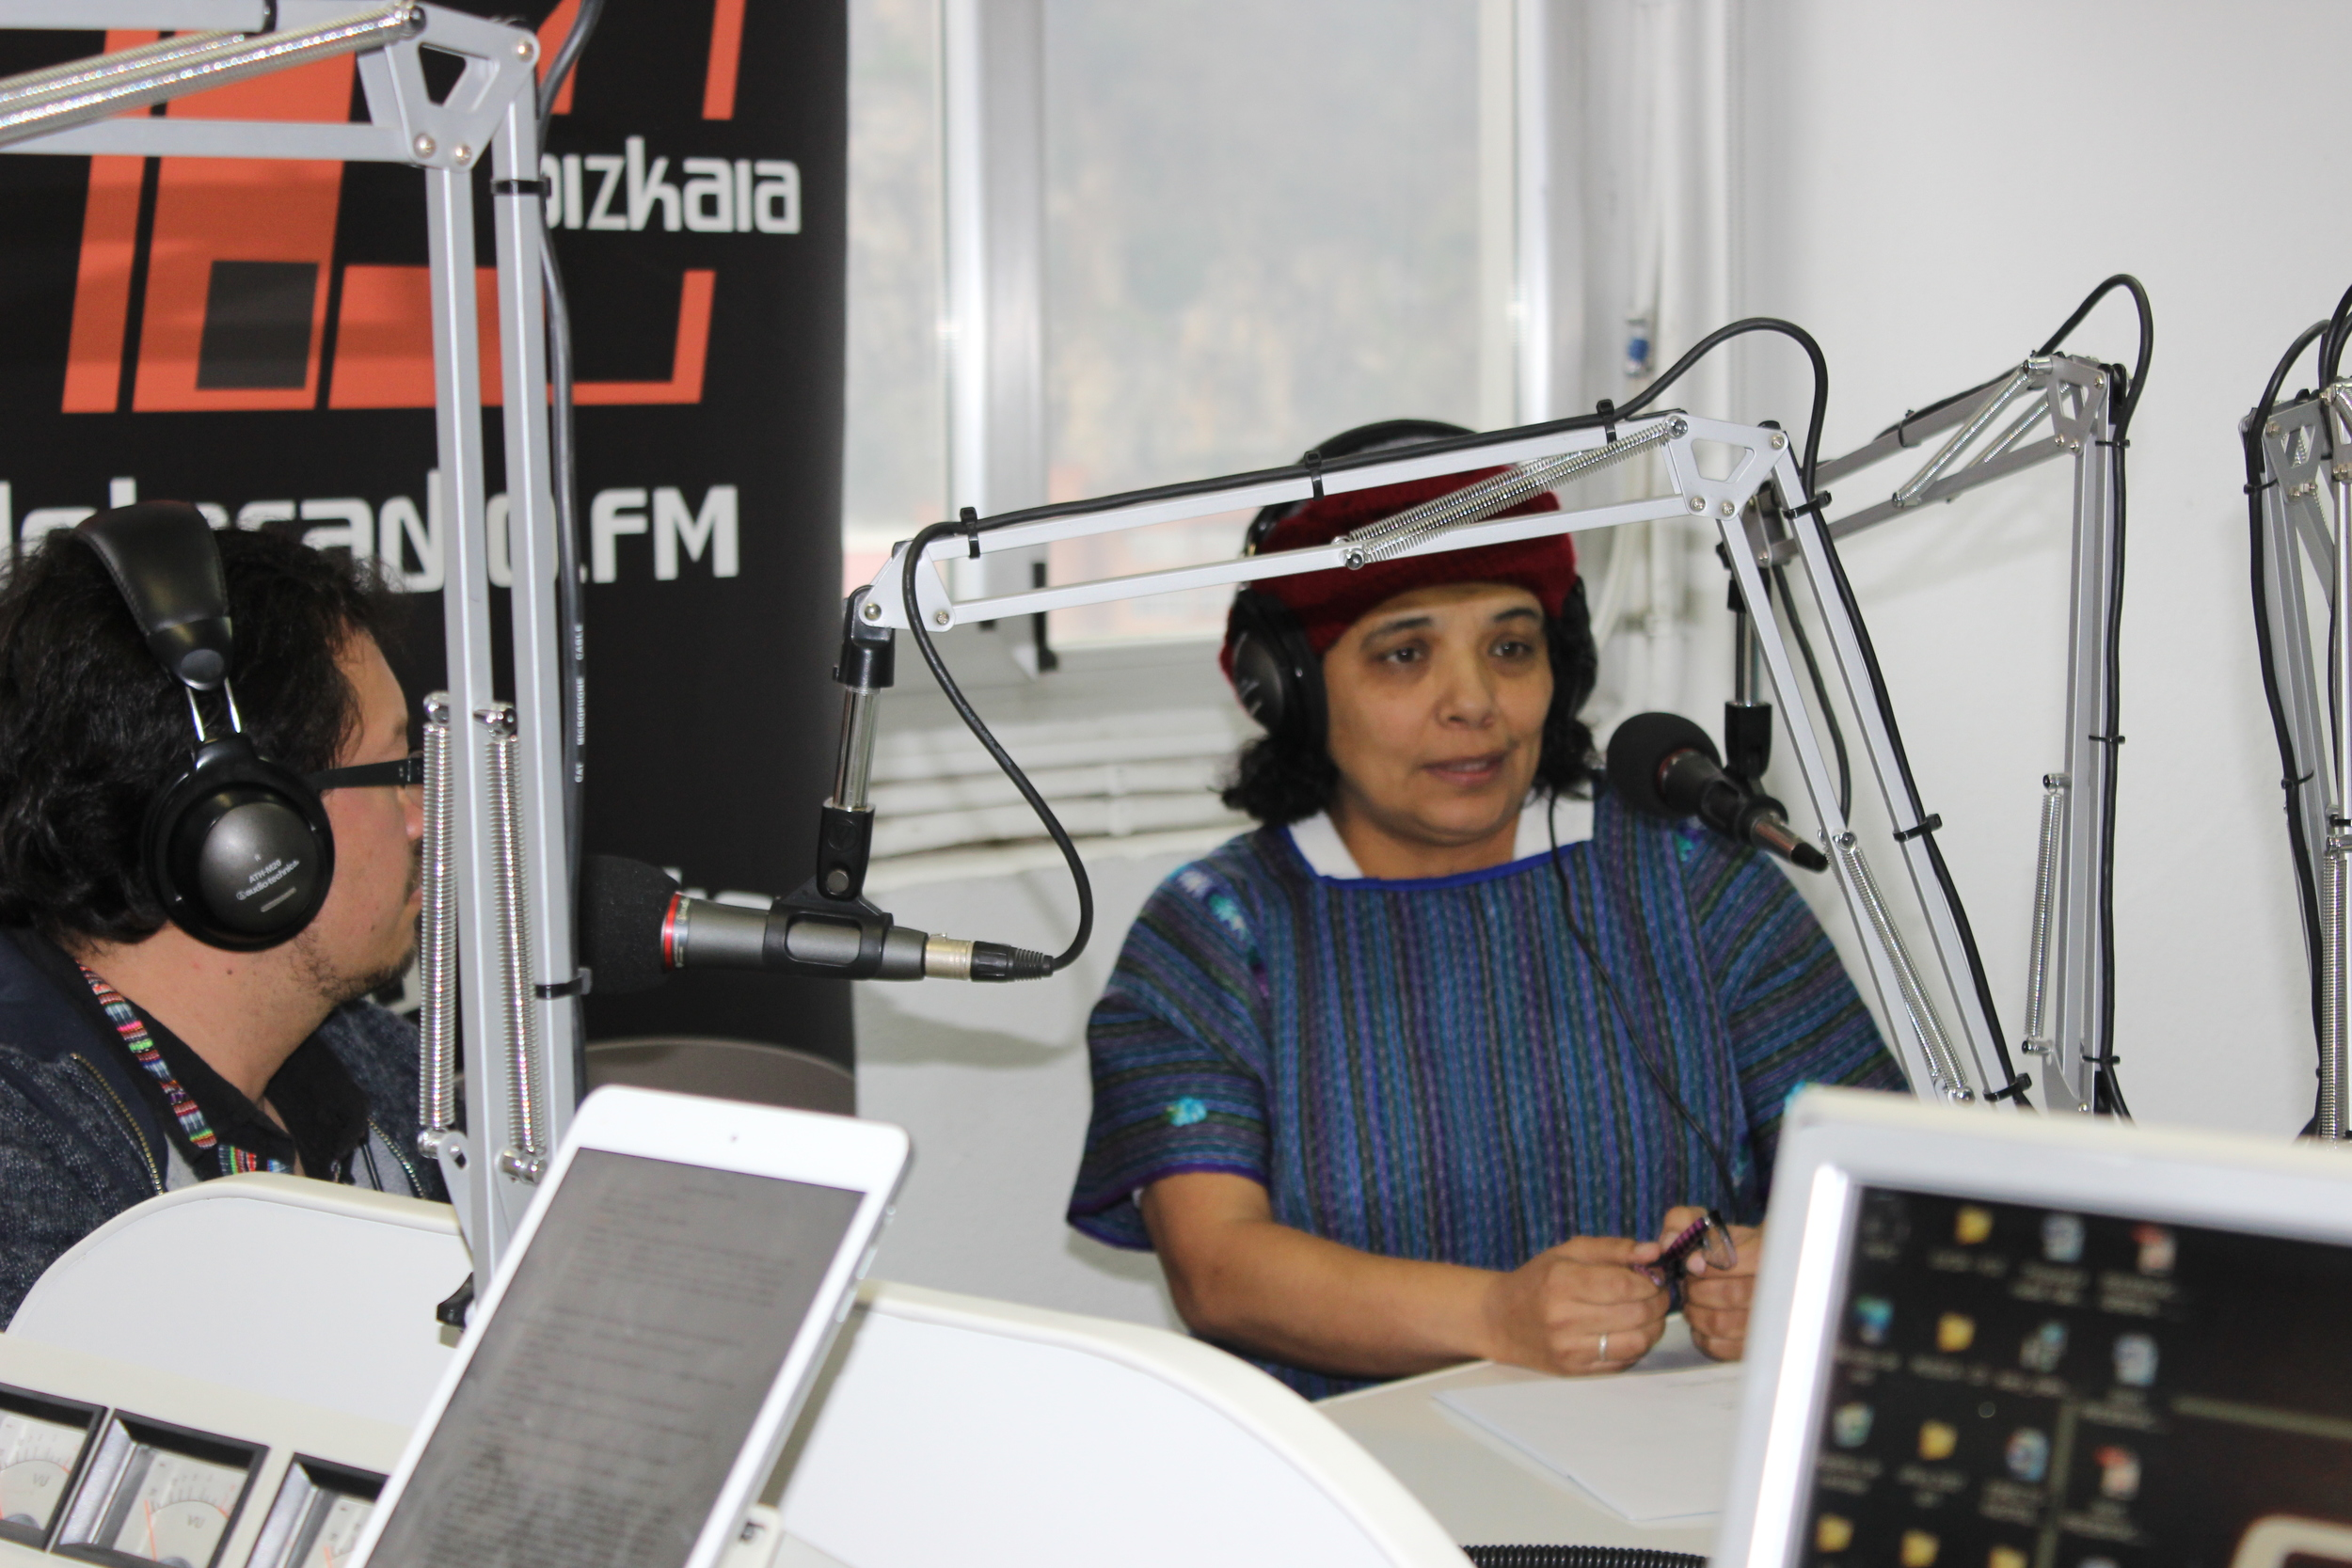 Lucía Pinto, poetisa guatemalteca leyendo sus poemas en Radio Candela. LuciaPinto, reading one of her poems in Radio Candela.